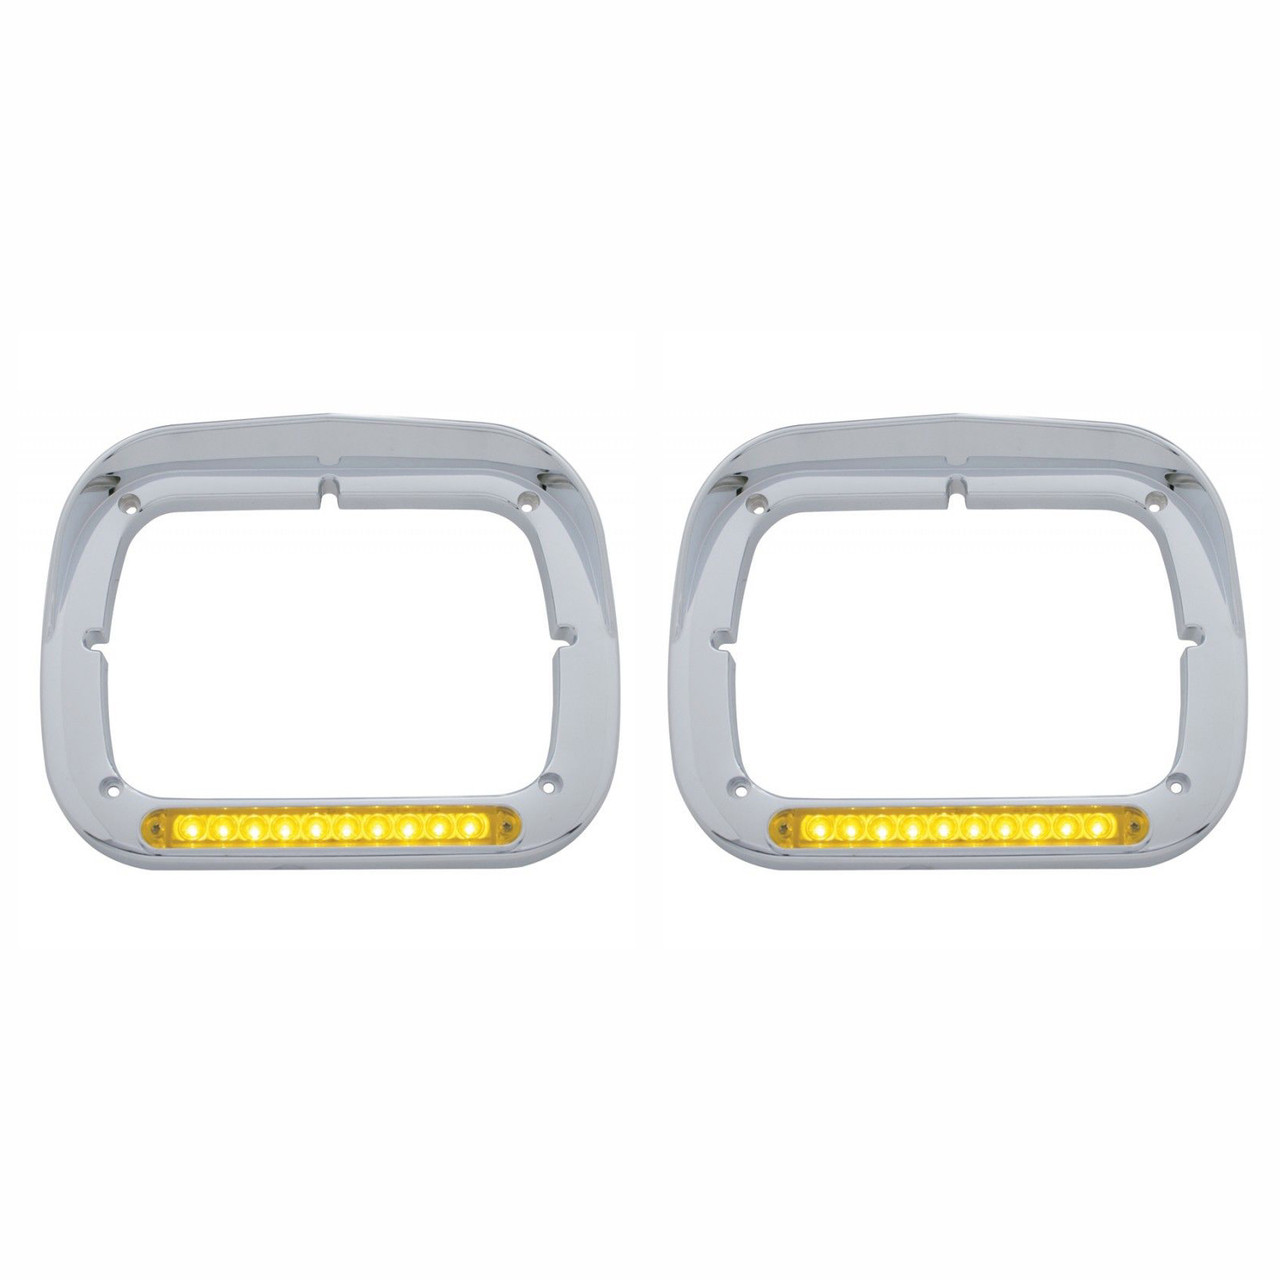 10 Amber LED Rectangular Headlight Bezel with Visor for Semi Trucks, Pair